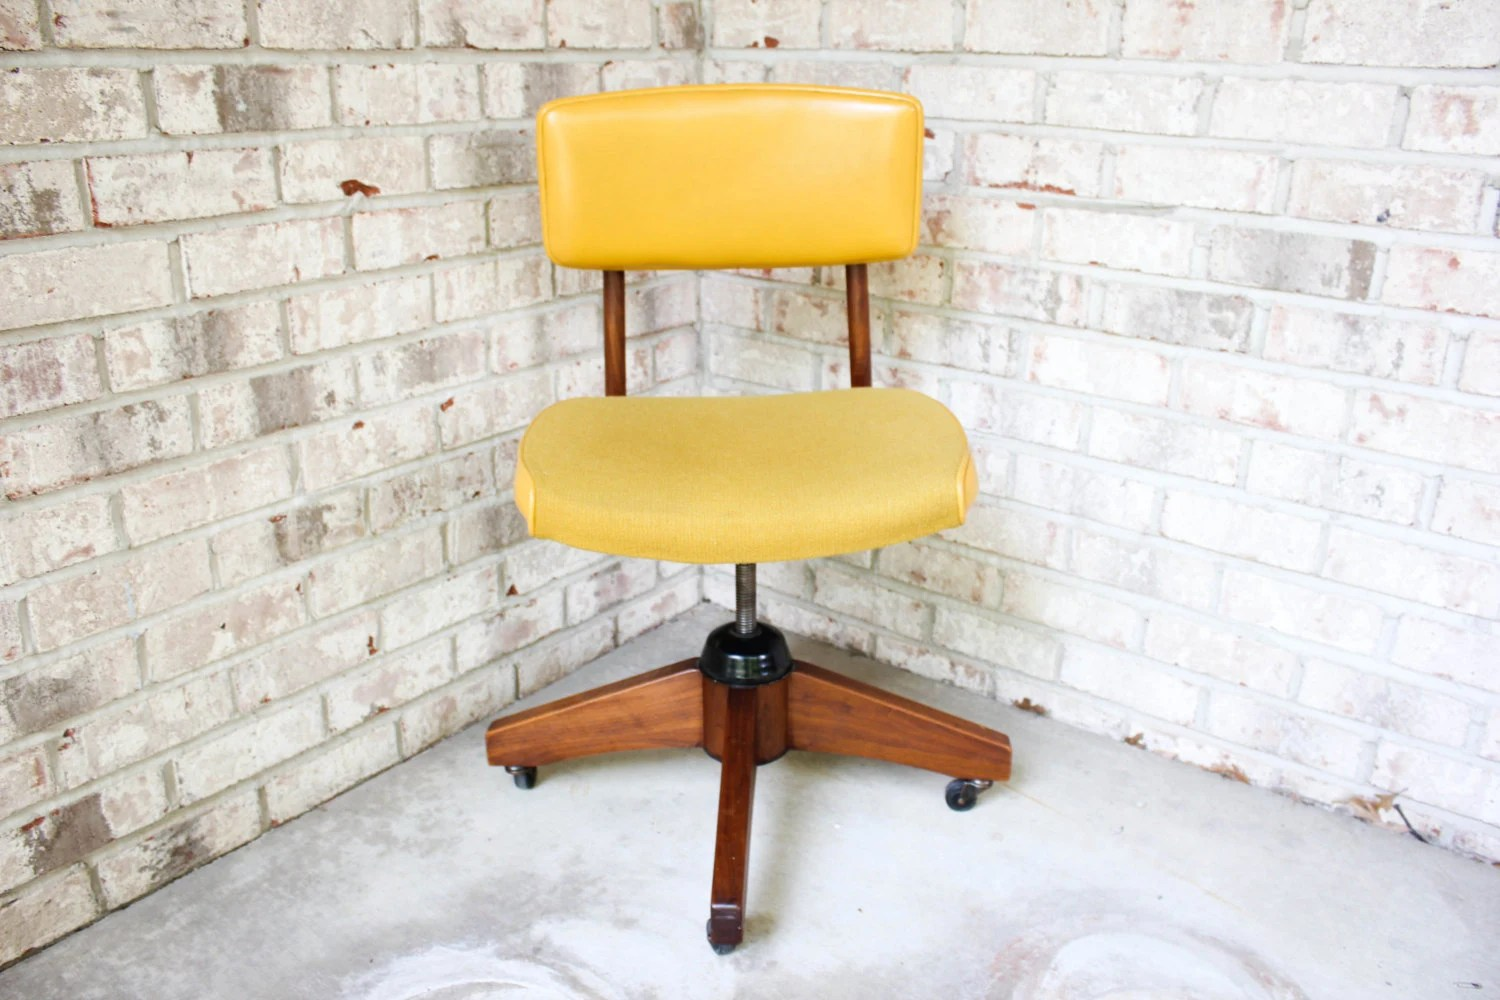 swivel chair mustard yellow plastic stackable lawn chairs rare mid century modern and walnut the